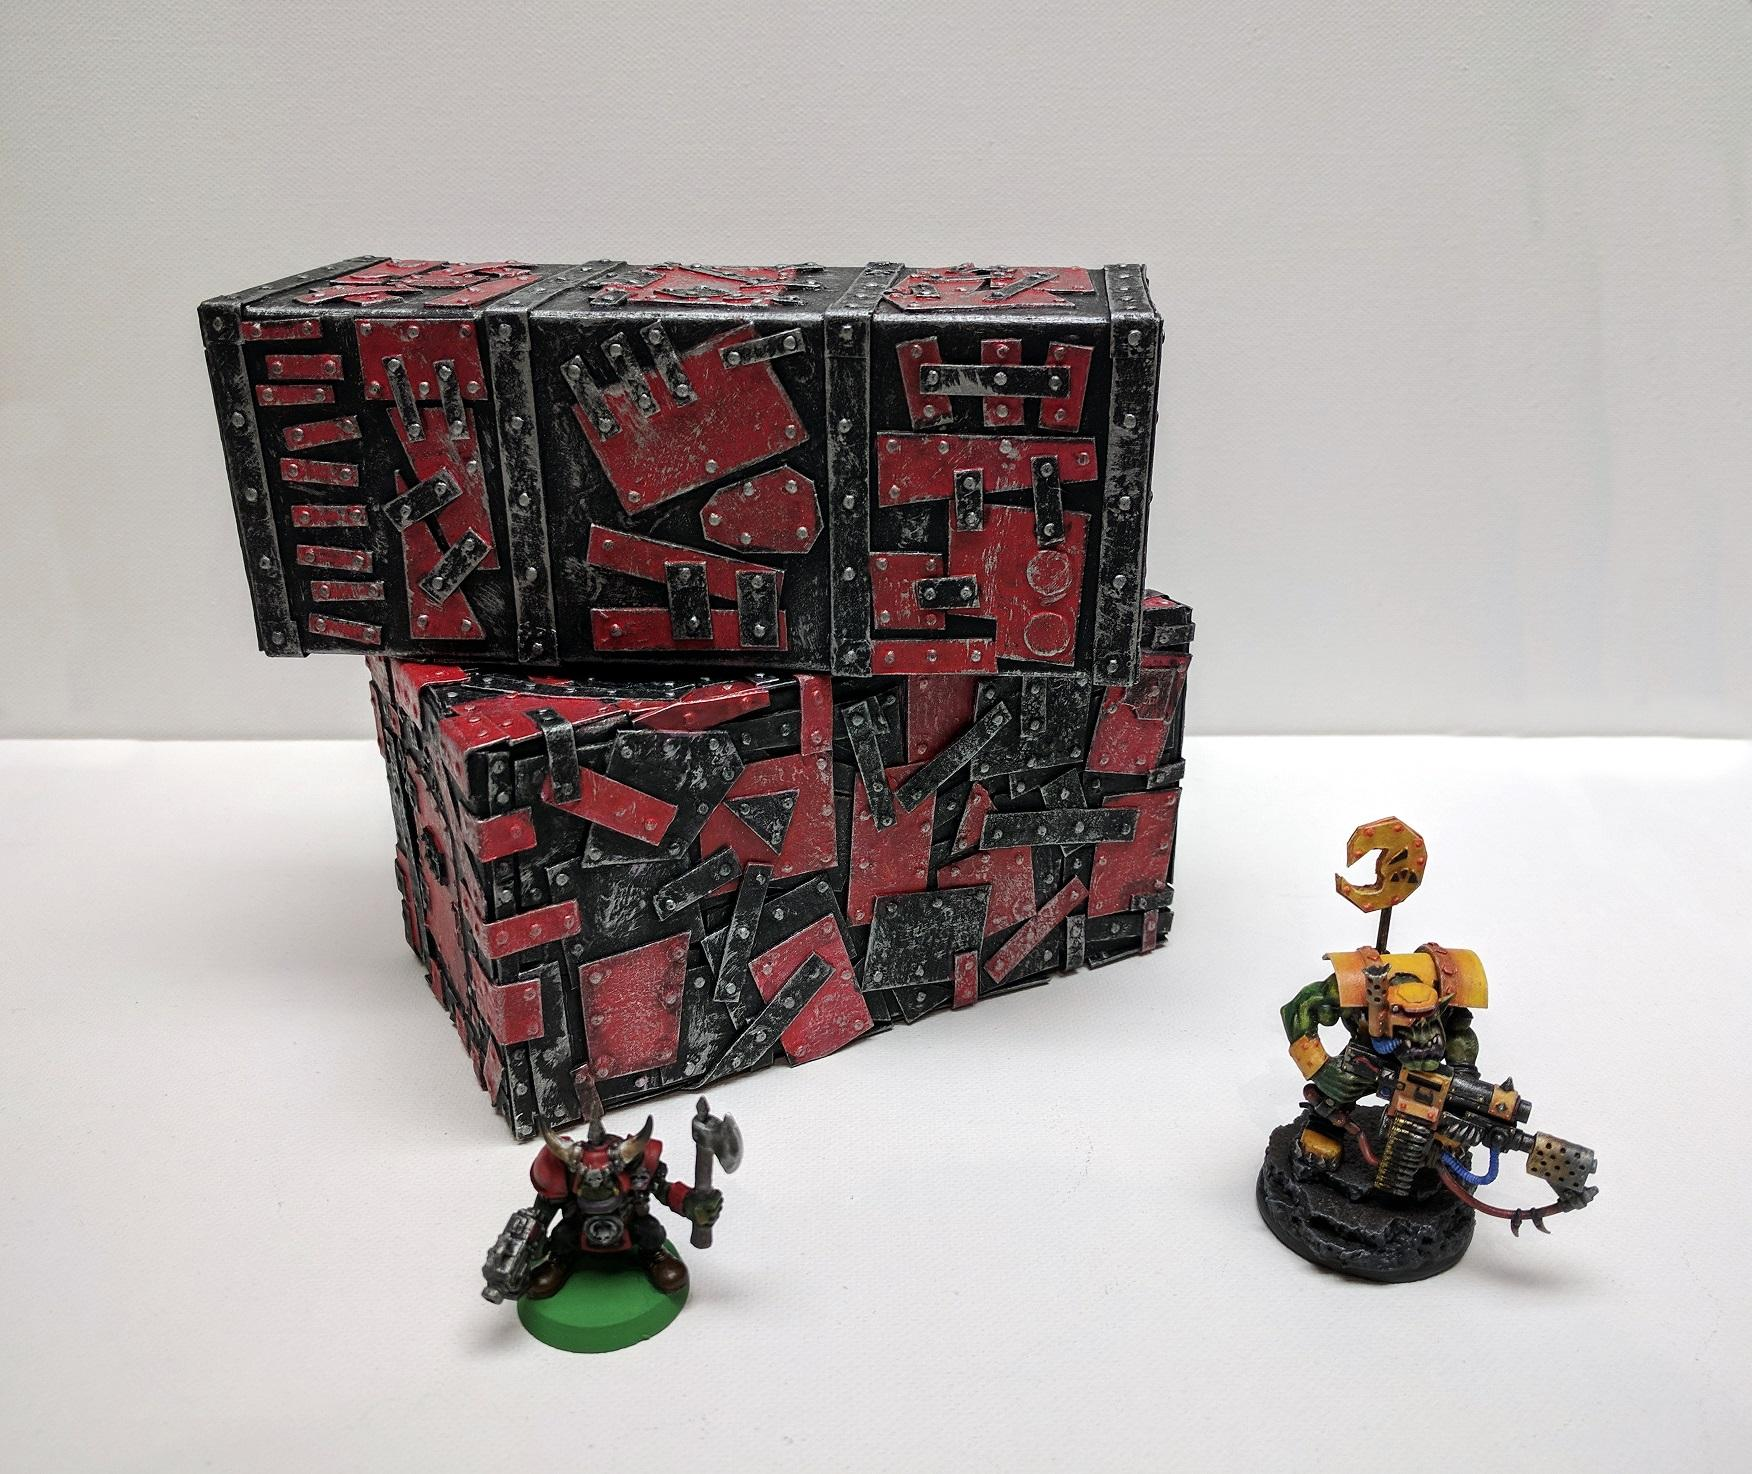 Cargo Containers, Crates, Custom, Orks, Scratch Build, Shipping Container, Terrain